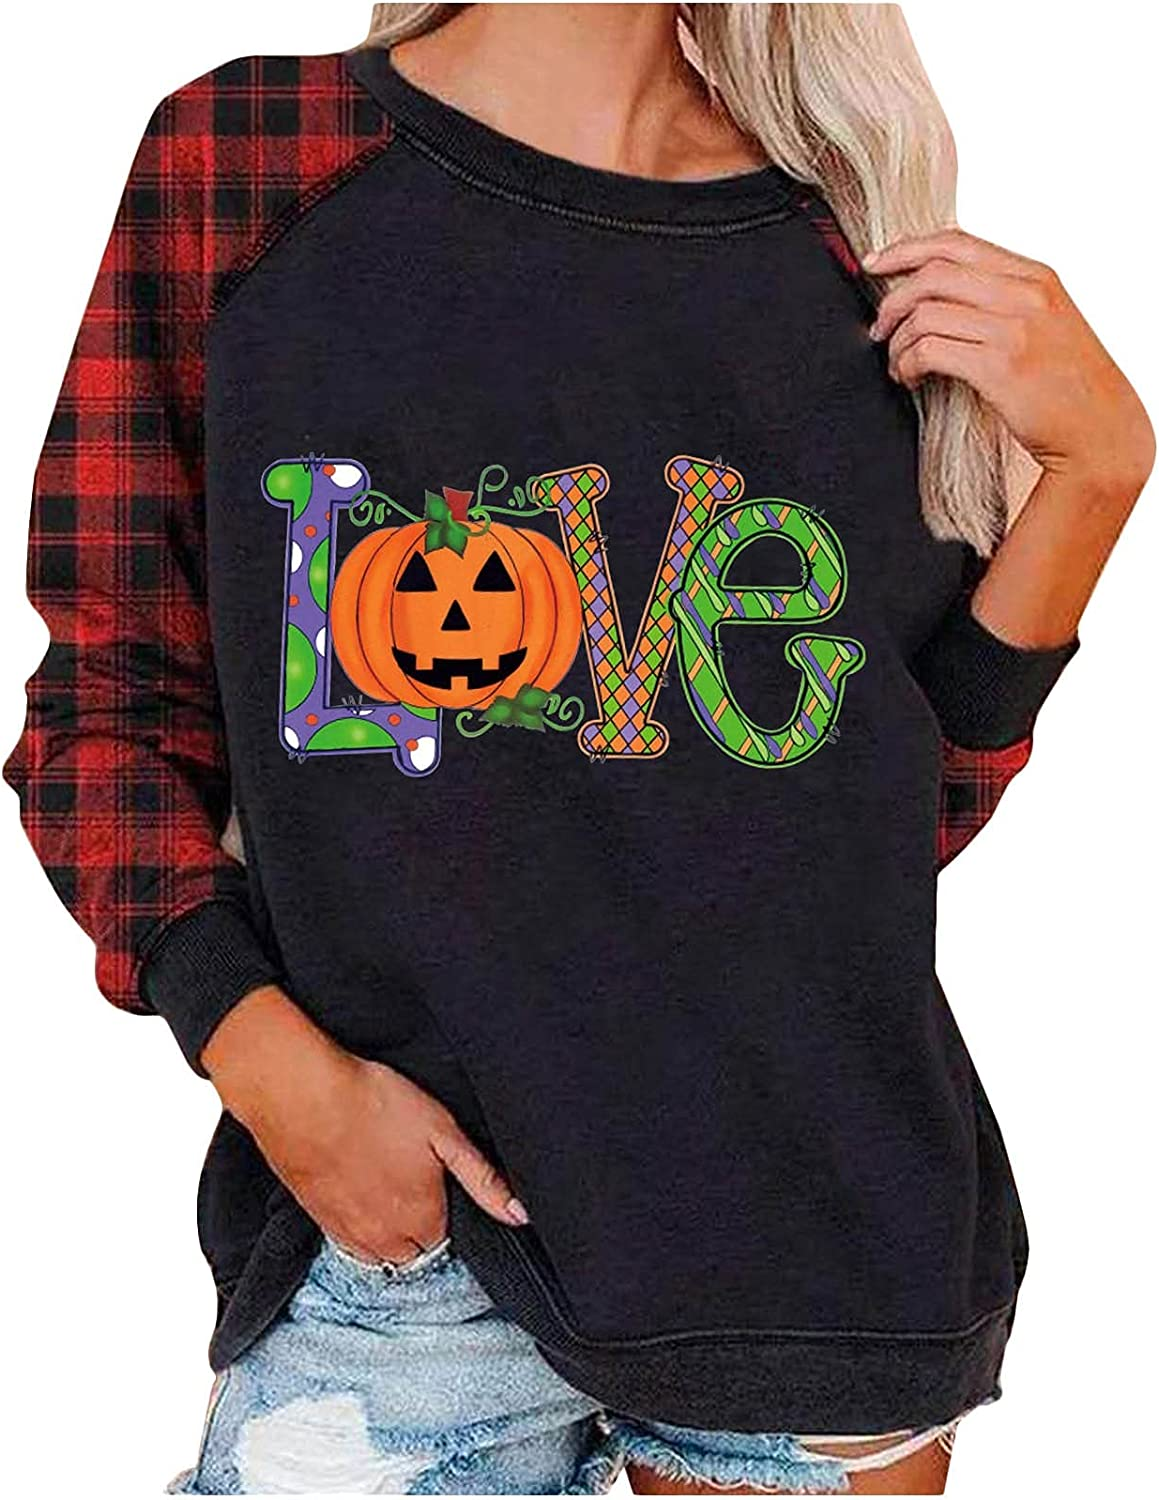 Manufacturer regenerated product Women's Happy Cash special price Halloween Long Sleeve Fit Sweatshirt Casual Loose